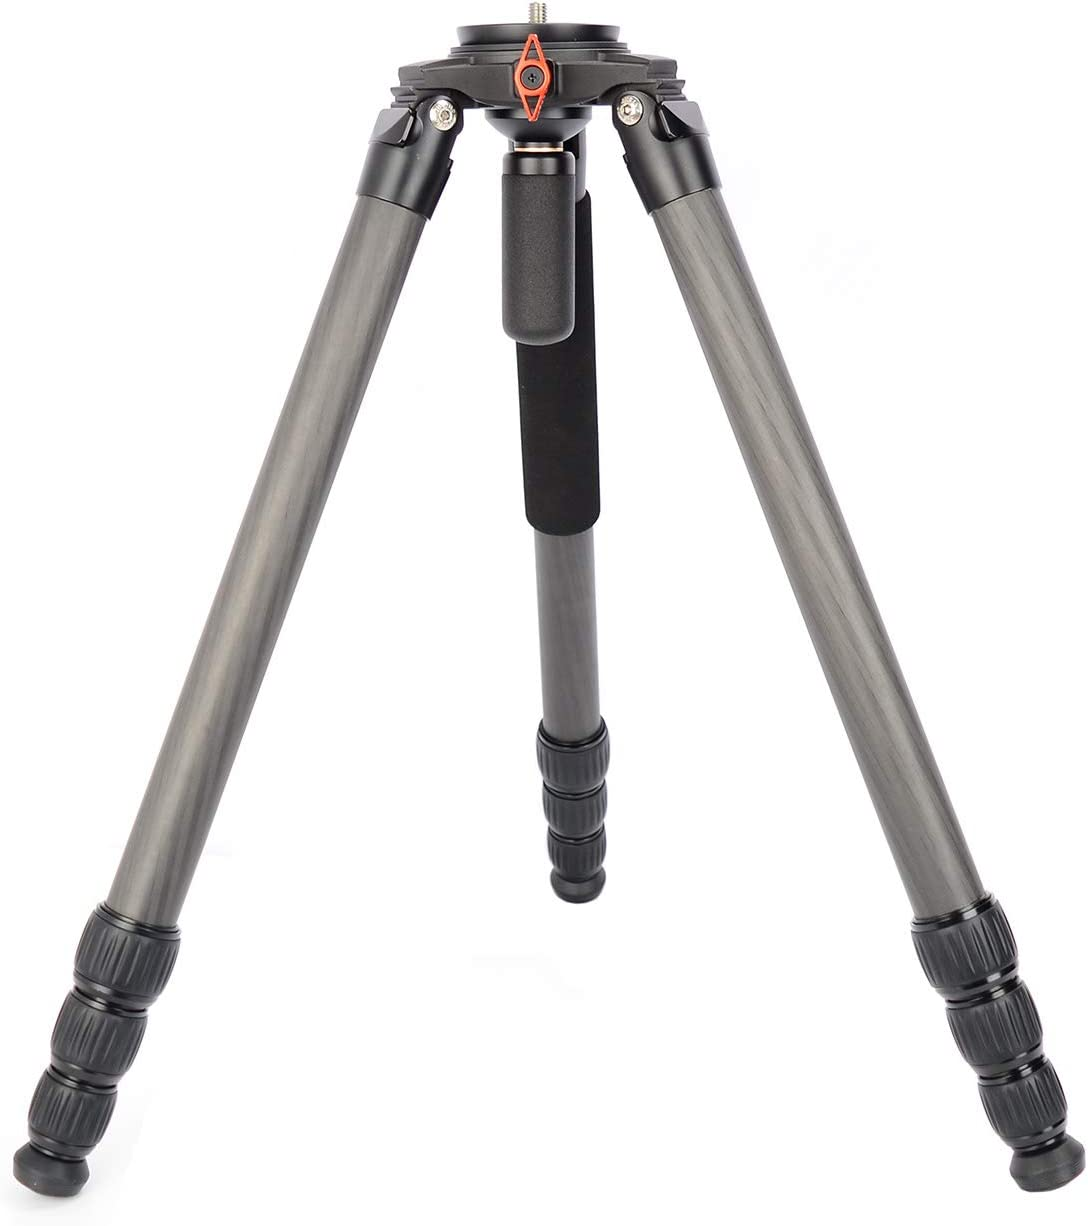 Koolehaoda New Generation Professional Portable Carbon Fiber Tripod Monopod /& Ball Head JUSIN Series AF-284C+FGS36